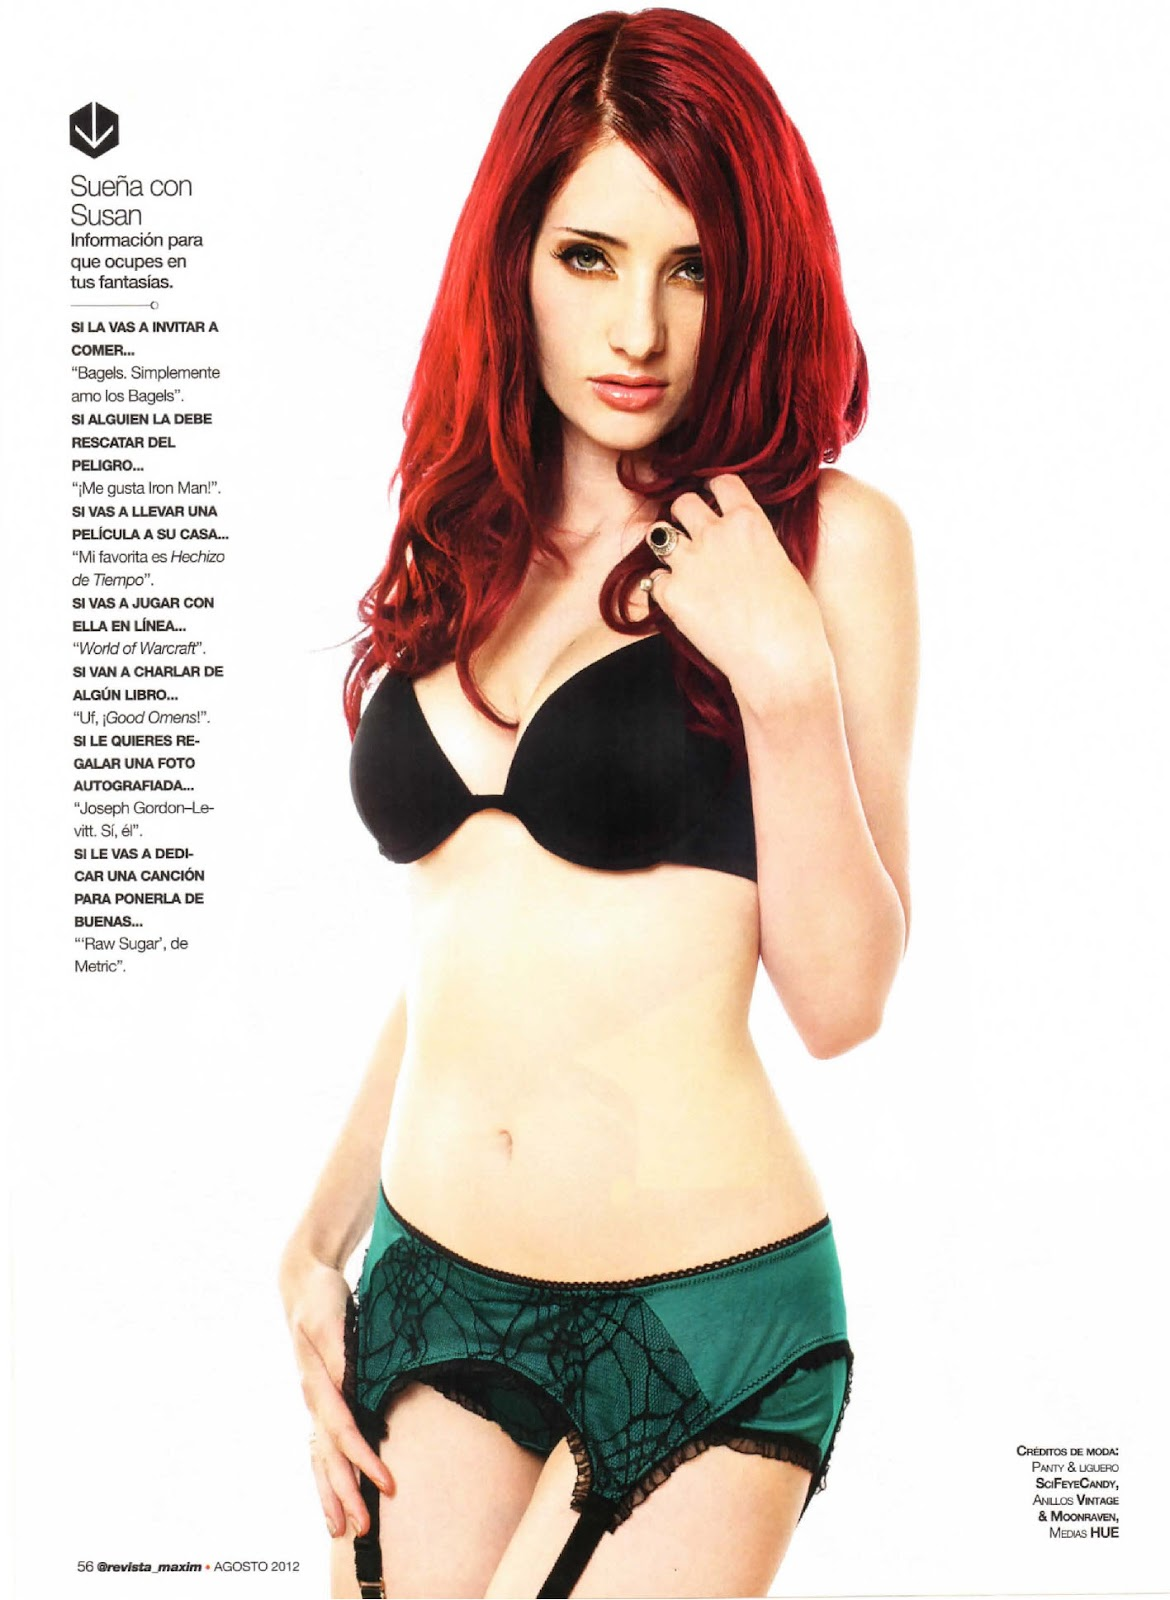 http://4.bp.blogspot.com/-VXWw5hZlYDE/UC01Ob0BndI/AAAAAAAAZi0/32Yxc_tE5Fc/s1600/Susan+Coffey+Lingerie+&+Stockings+-+Maxim+Spain+August+2012+08.jpg